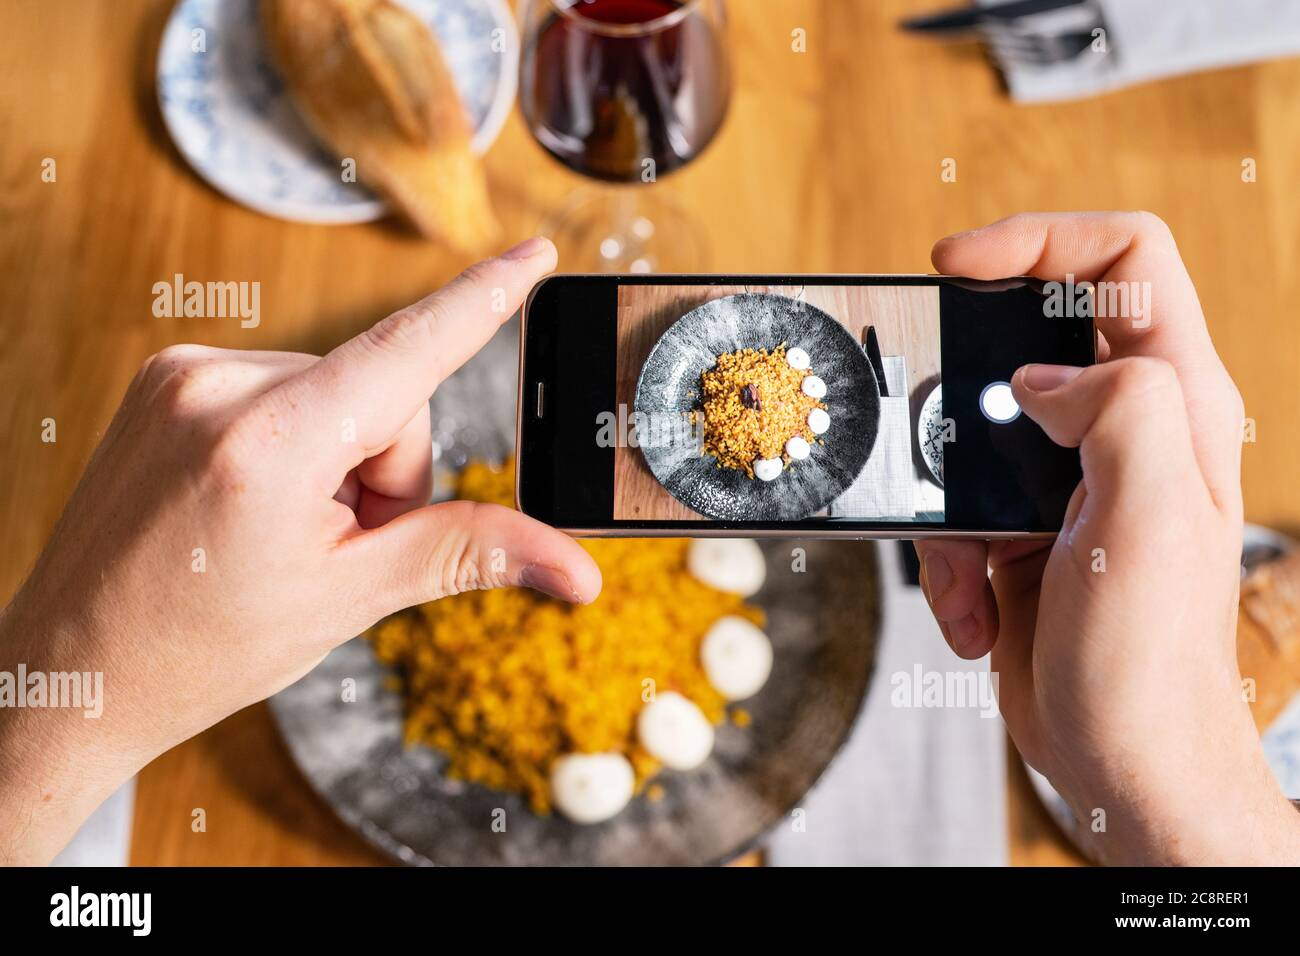 Man Hand With Smartphone Photographing Food At Restaurant Or Cafe High Quality Photo Stock Photo Alamy